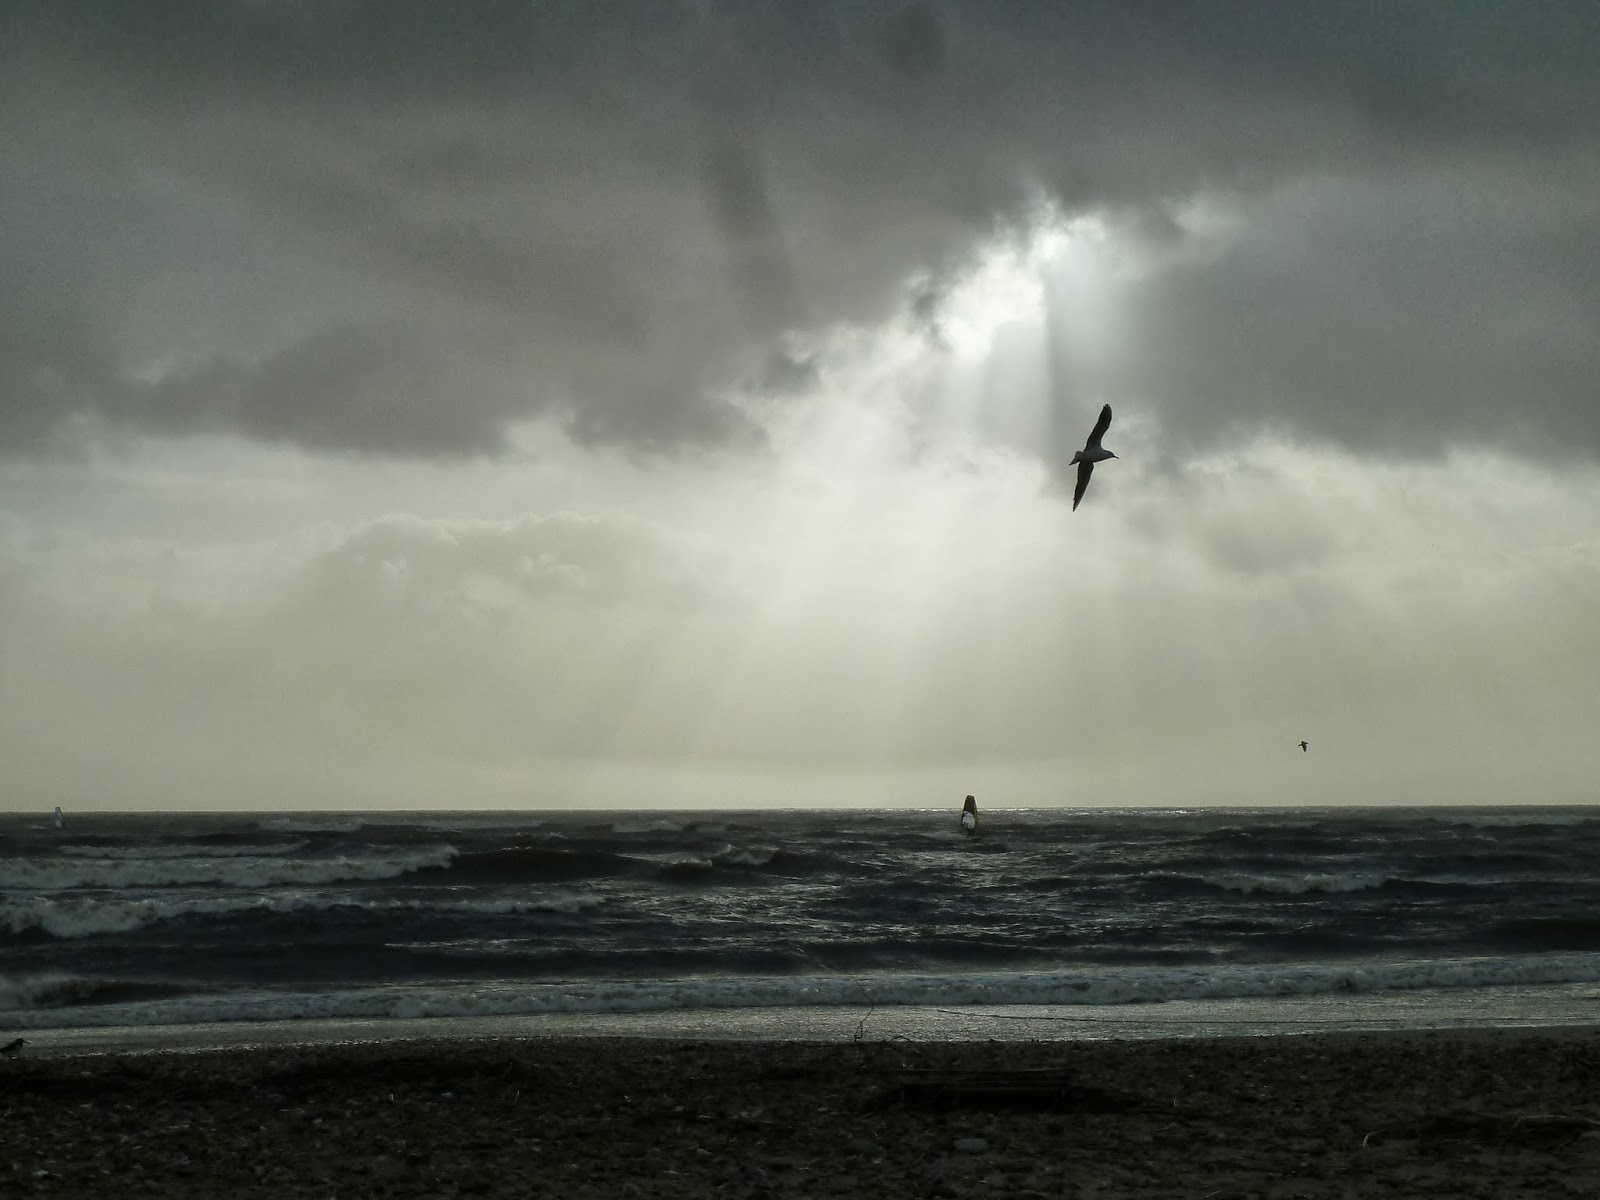 Seagull and windsurfer silhouetted against winter sky